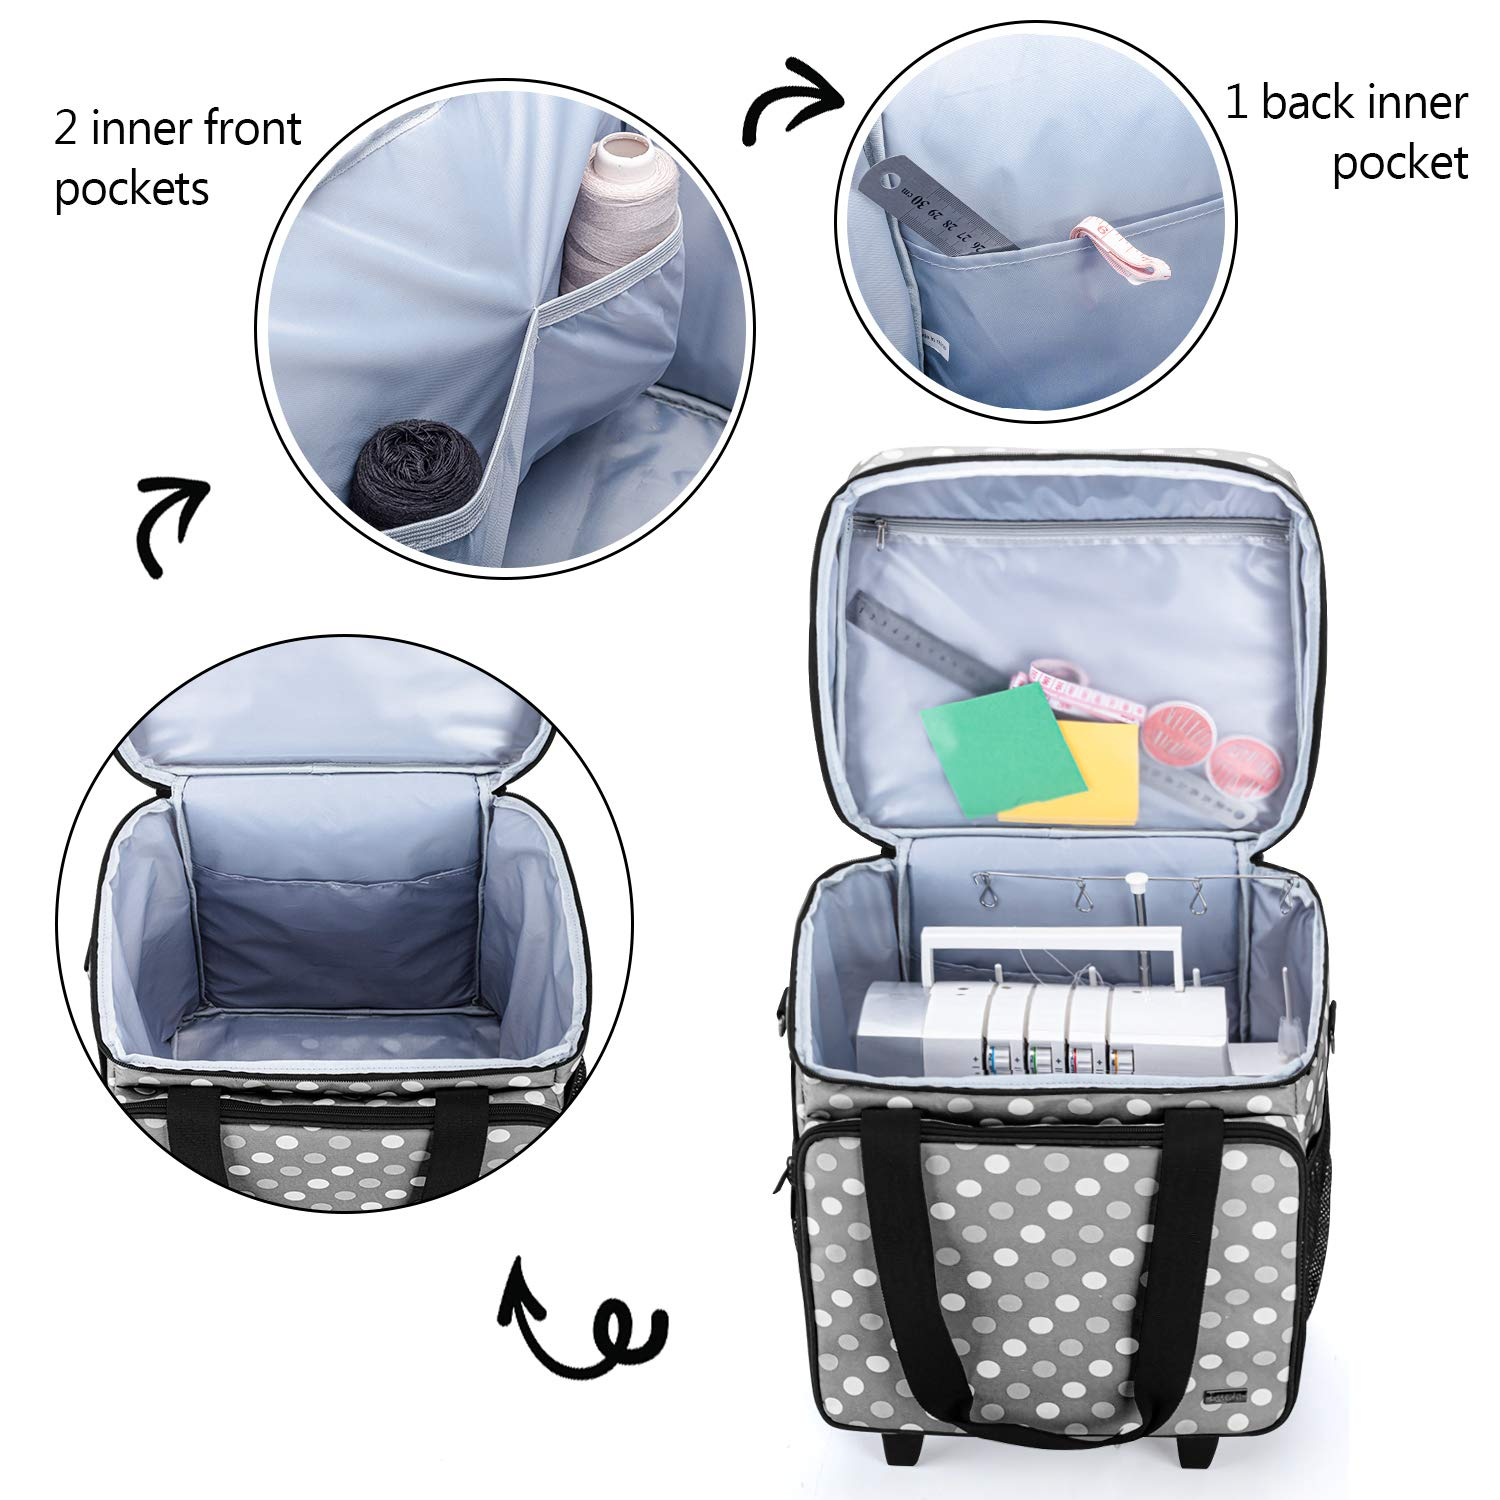 Serger Case with Accessories Storage Pockets Gray Dots Fit for Most Standard Serger Sewing Machines Luxja Overlock Sewing Machine Case with Detachable Trolley Dolly